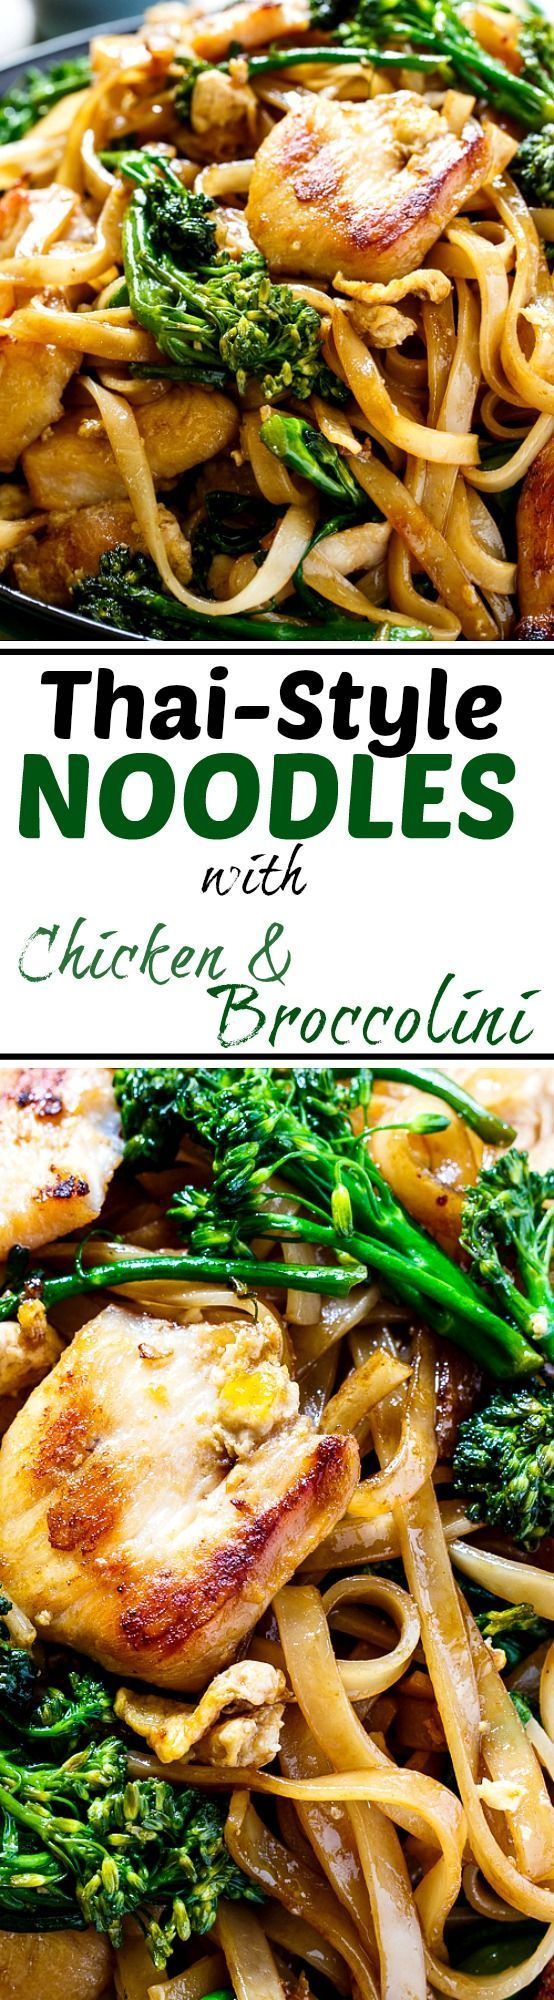 Better than takeout Thai-Style Noodles with chicken and broccolini.